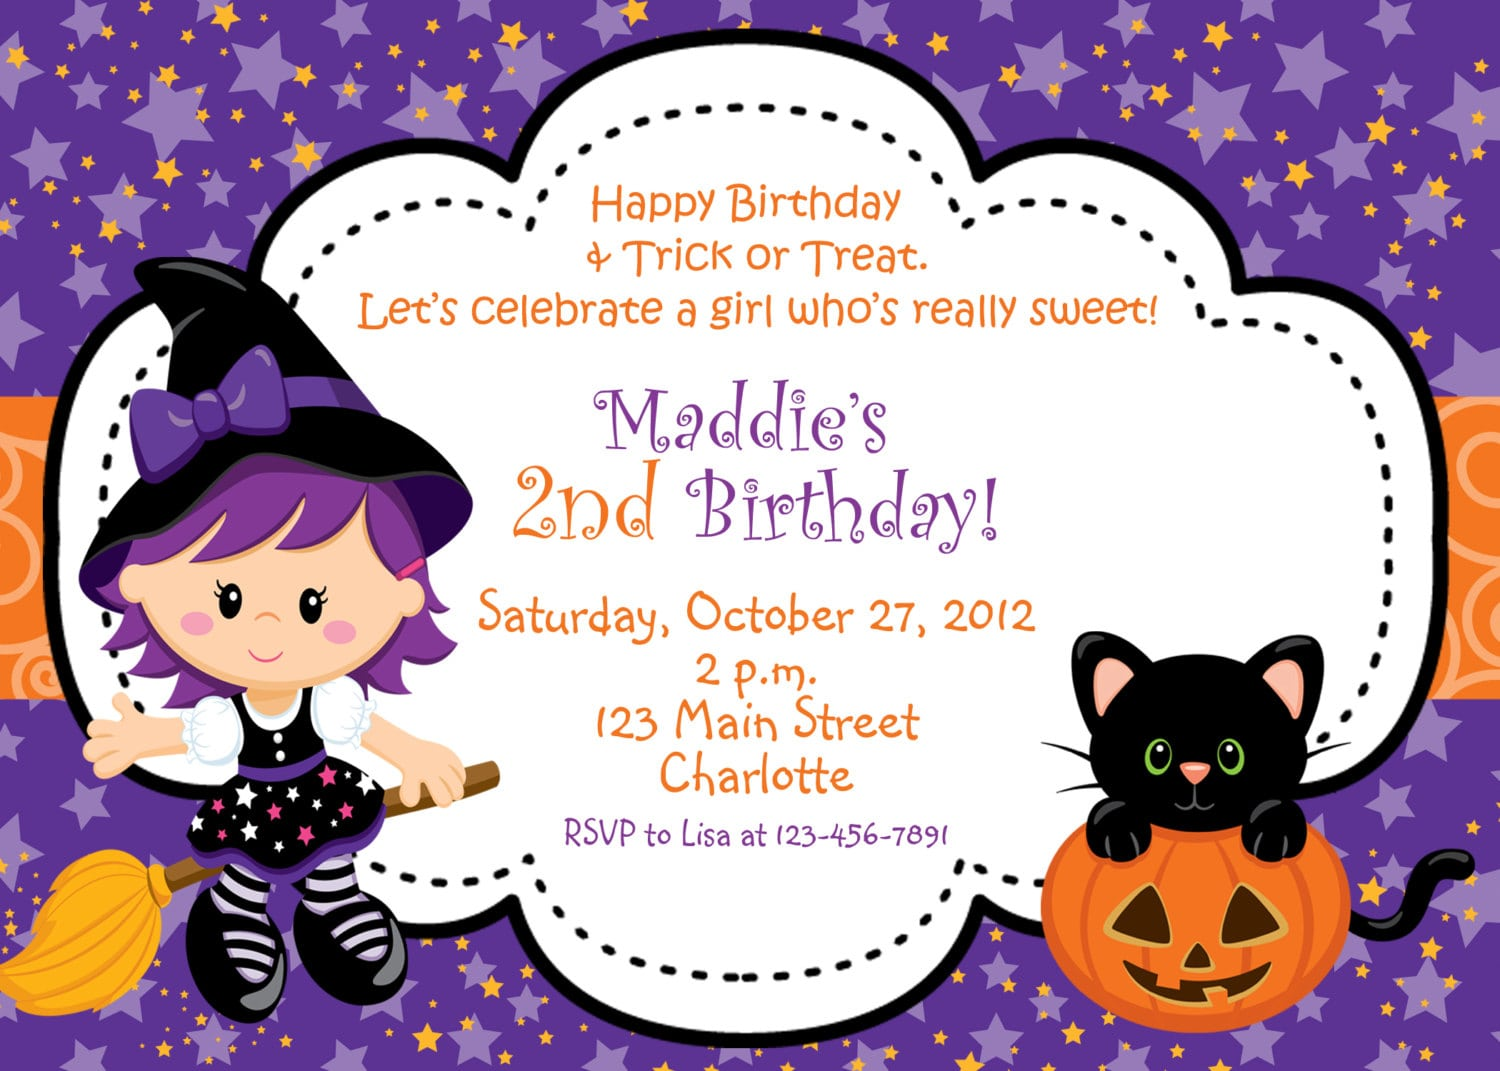 Halloween birthday costume party invitations the halloween costumes birthday costume party invitations filmwisefo